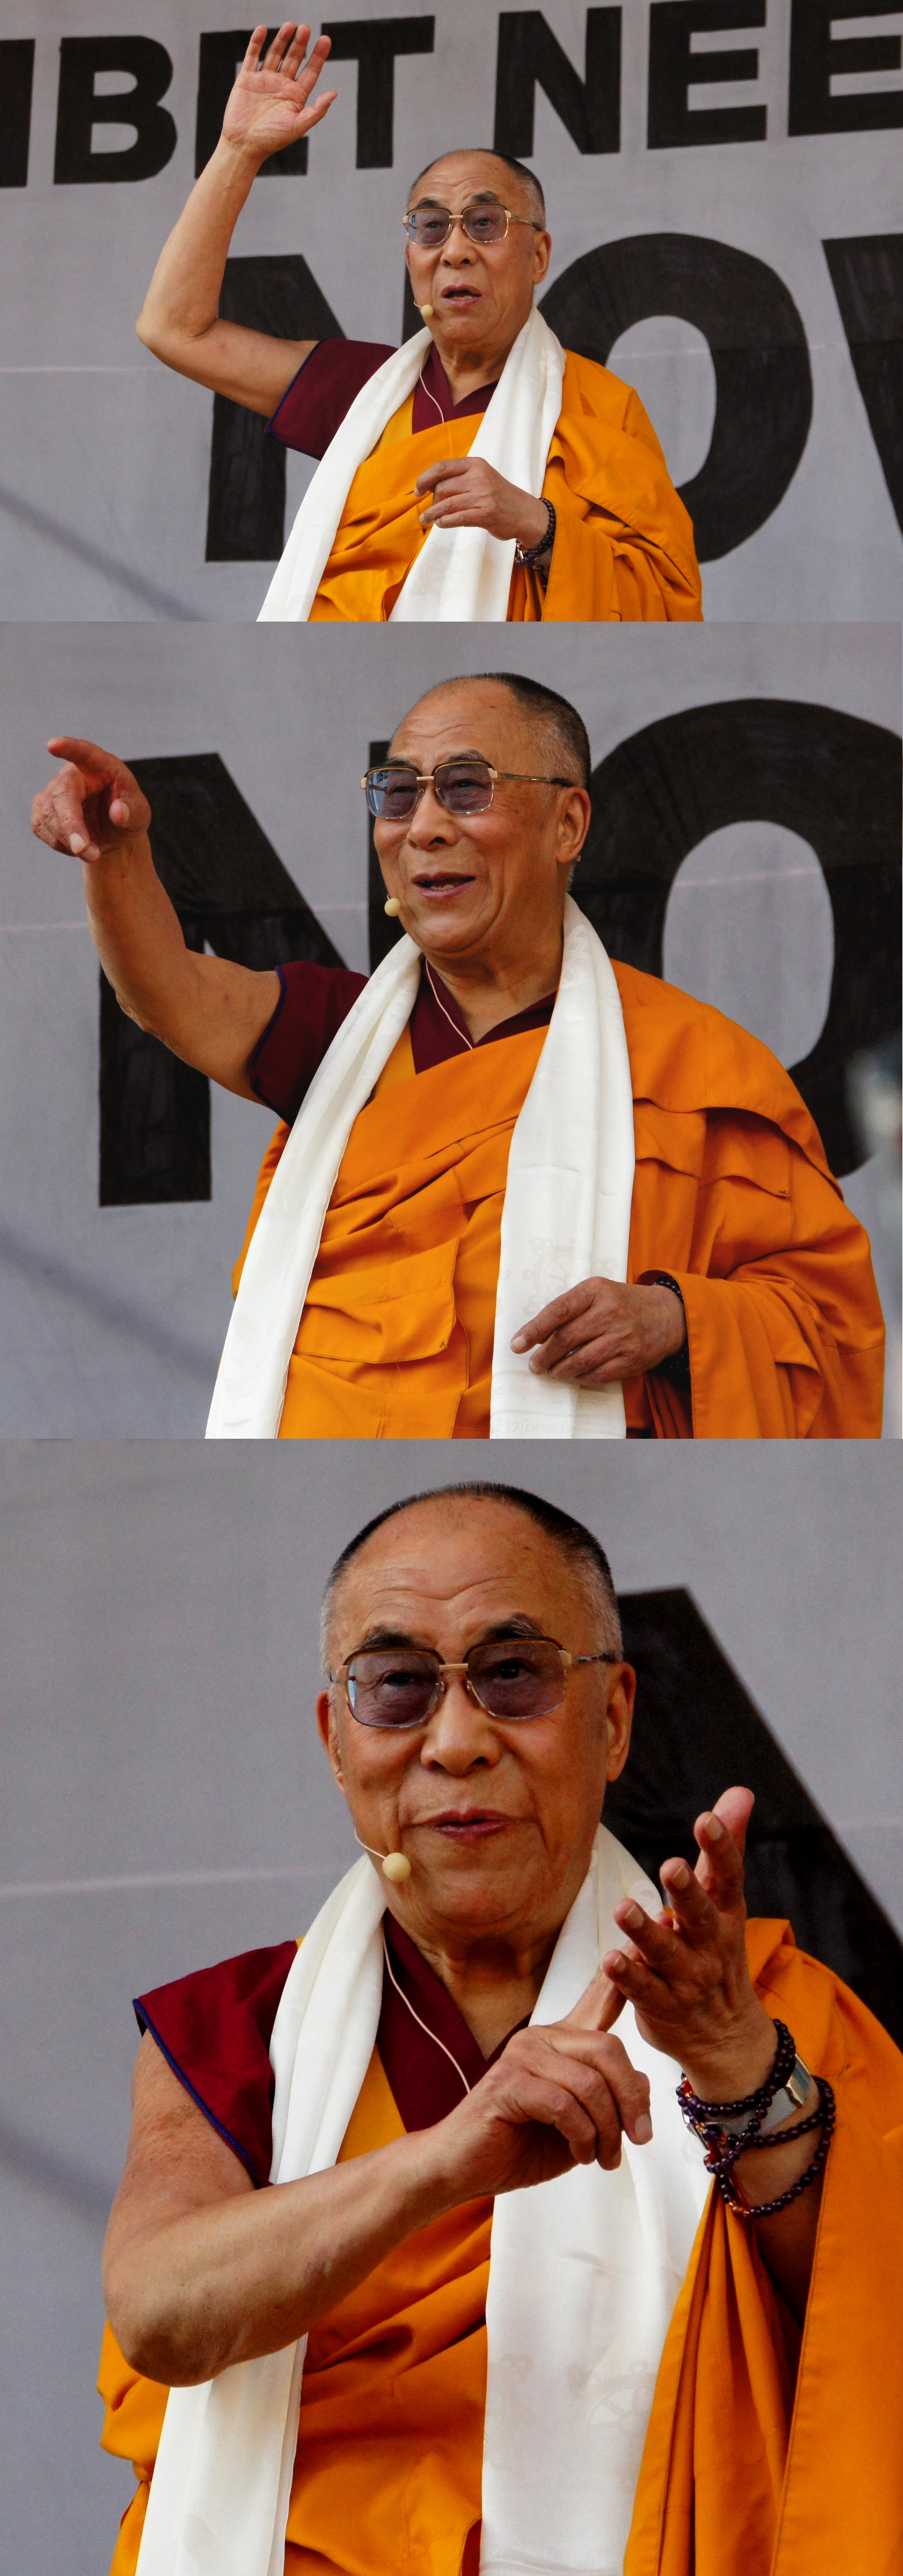 14th Dalai Lama Wikipedia 1911schematicsandpartslists Please Download Free Gun Manual Here Democracy Nonviolence Religious Harmony And Tibets Relationship With India